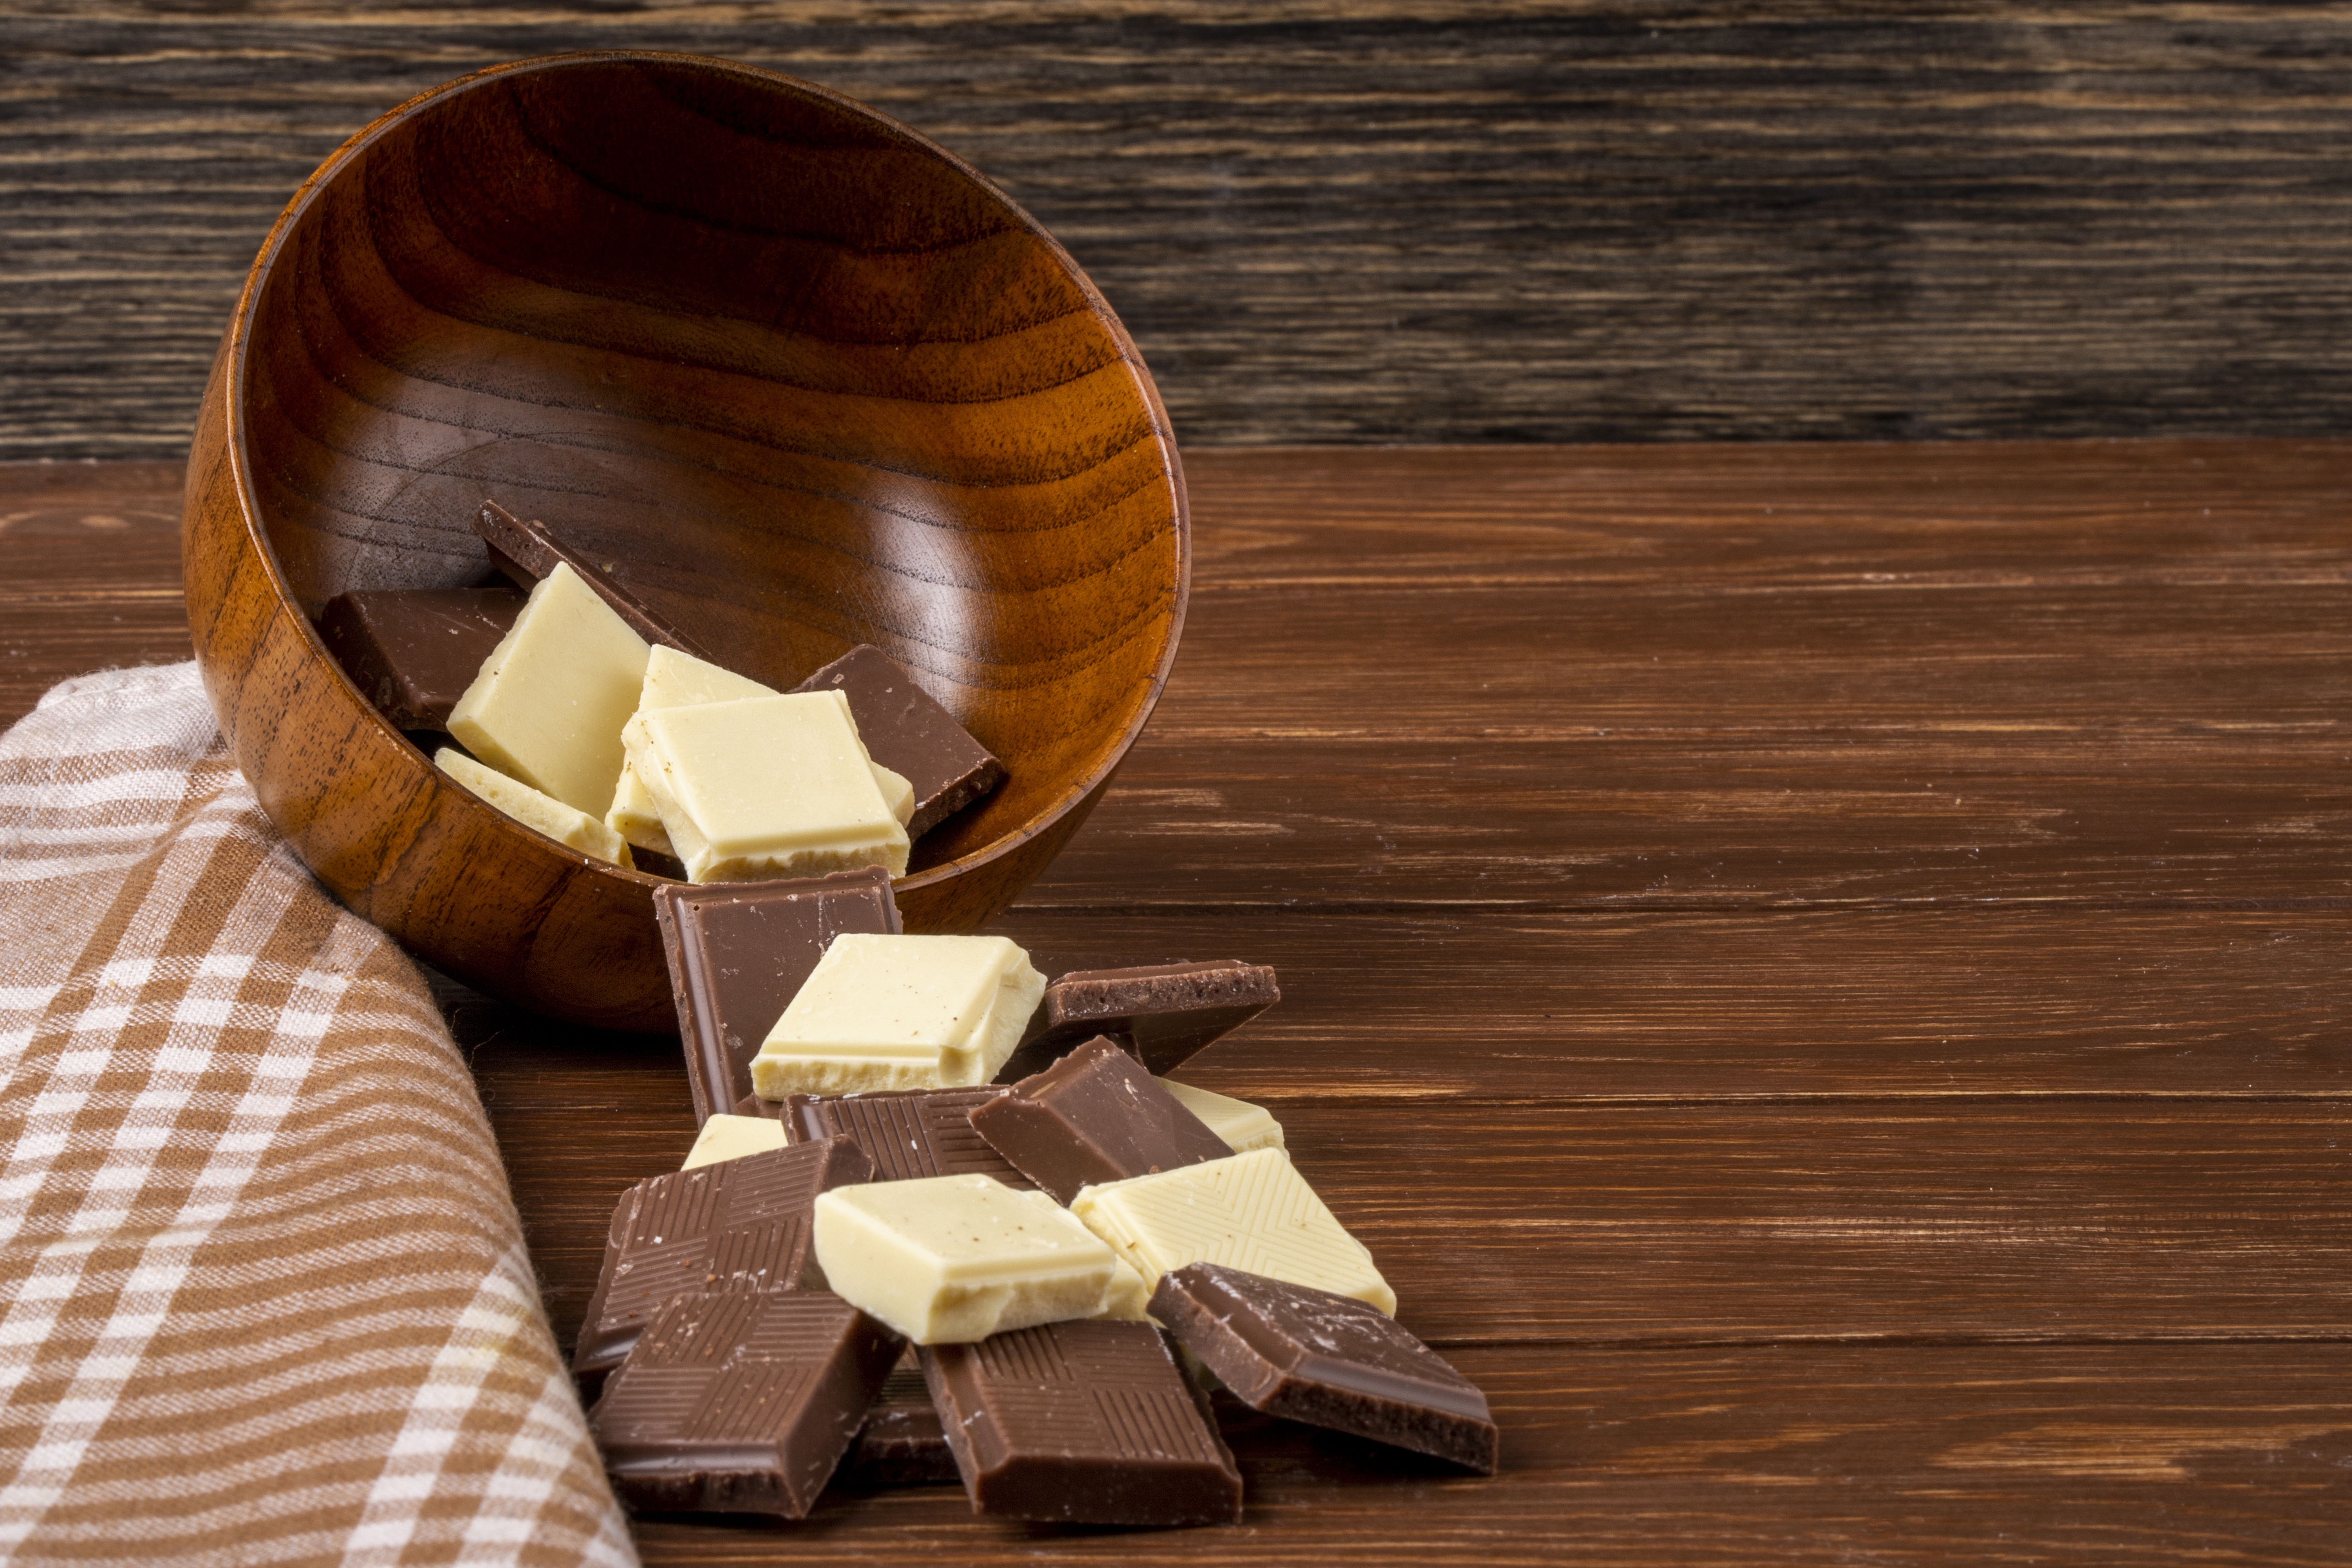 side view of dark and white chocolate pieces scattered from a wooden bowl on rustic background with copy space